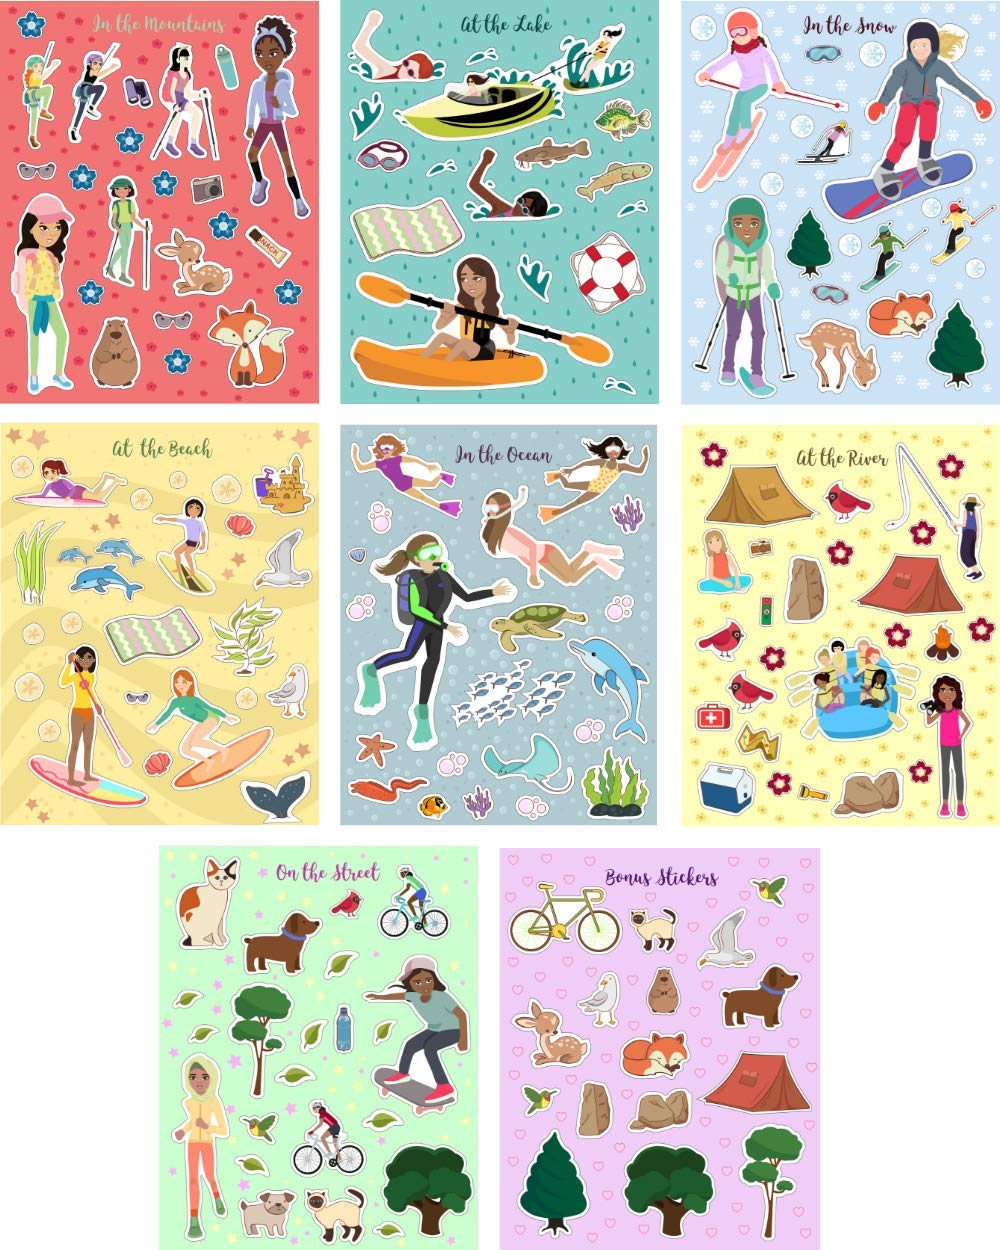 Confidence-Building Sticker Book for Girls Ages 4-8 - Outdoor Sports Sticker Adventure by Hopscotch Girls (Image #6)